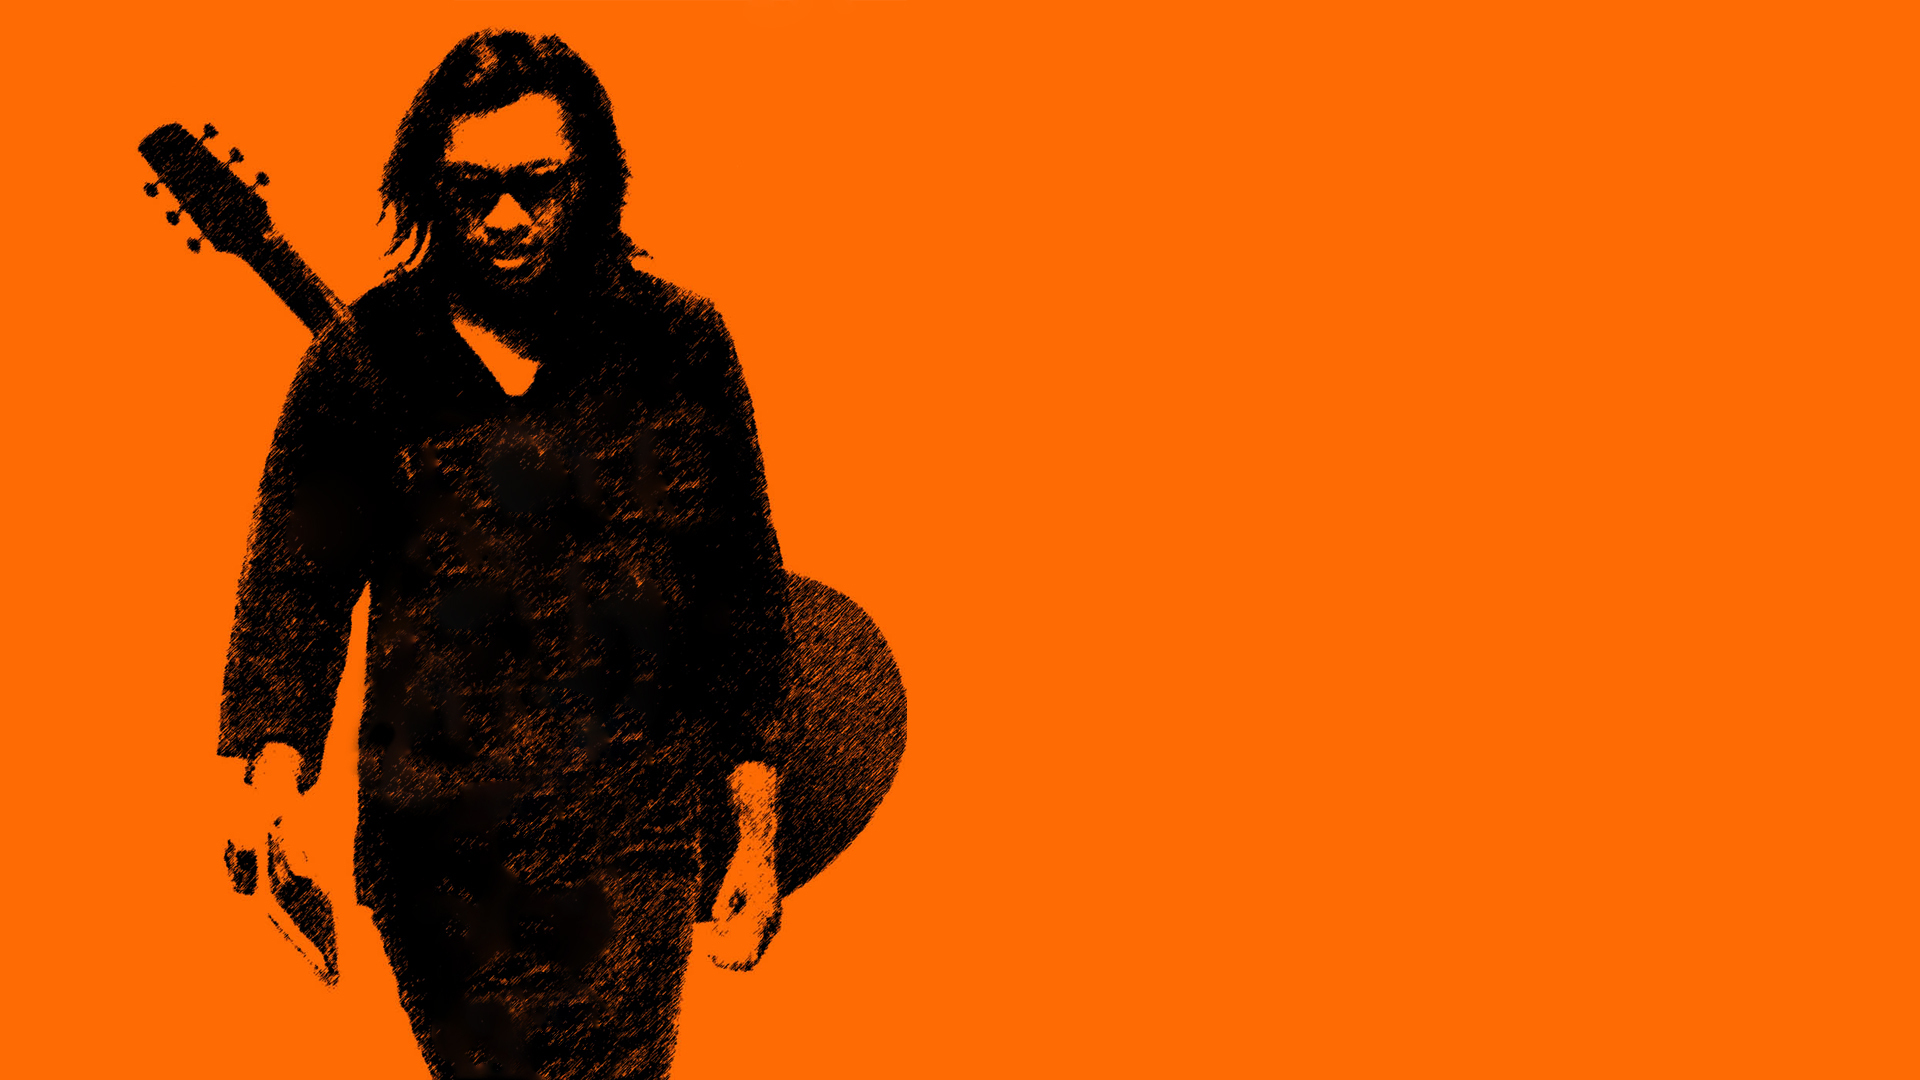 Rodriguez a most disgusting song free download.